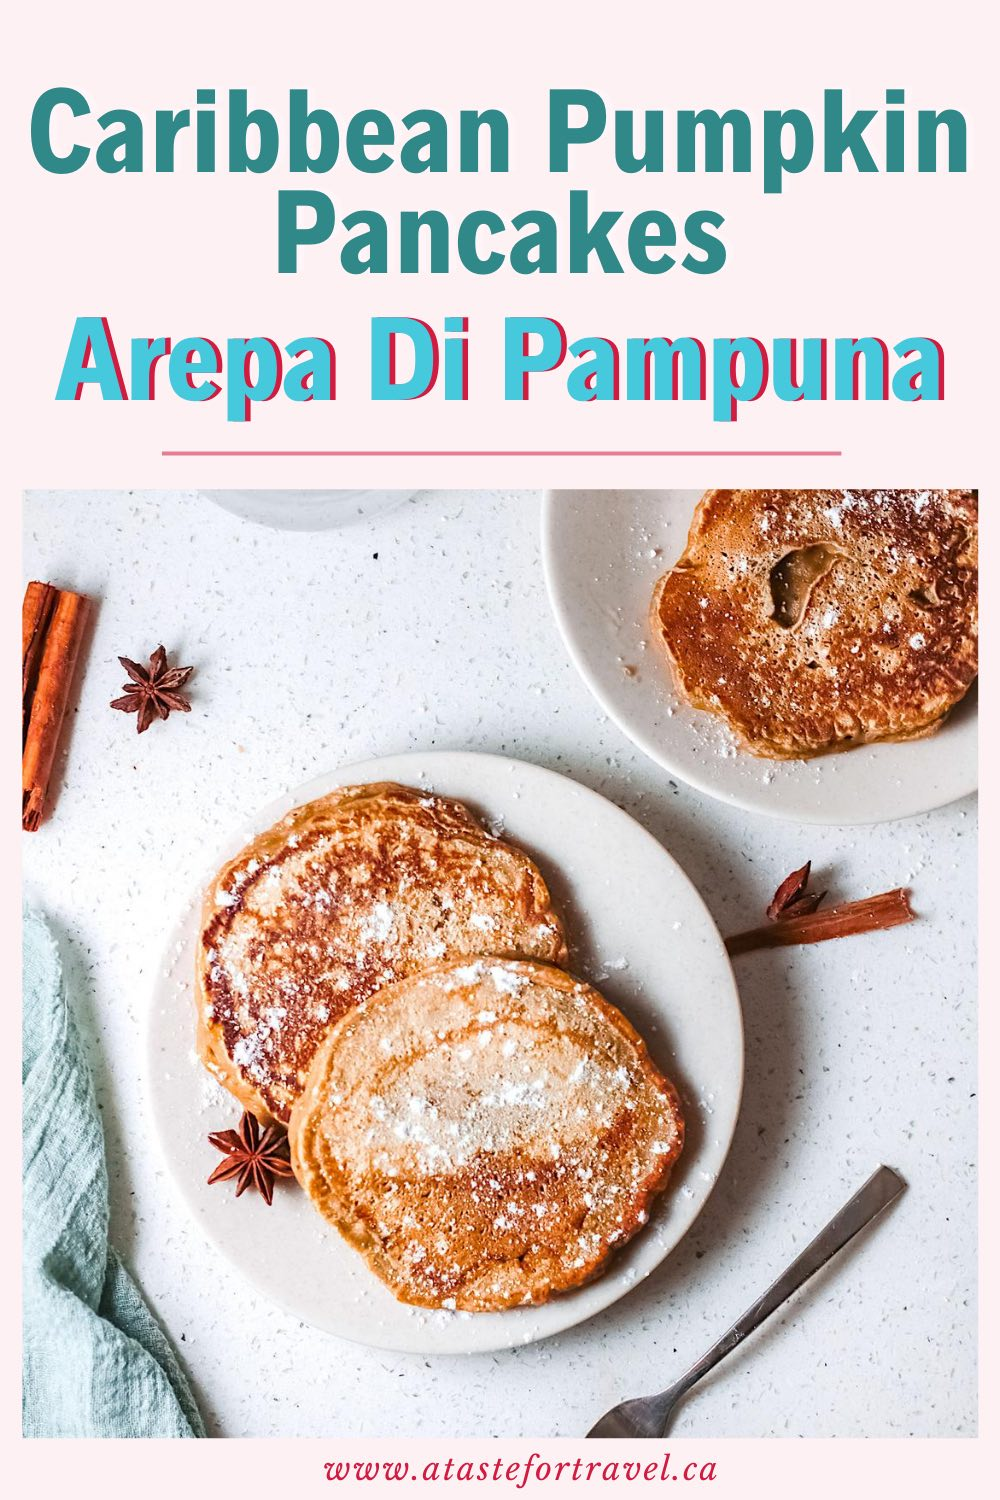 Pumpkin Pancakes or Arepa di Papoena with Pinterest Text Overlay.